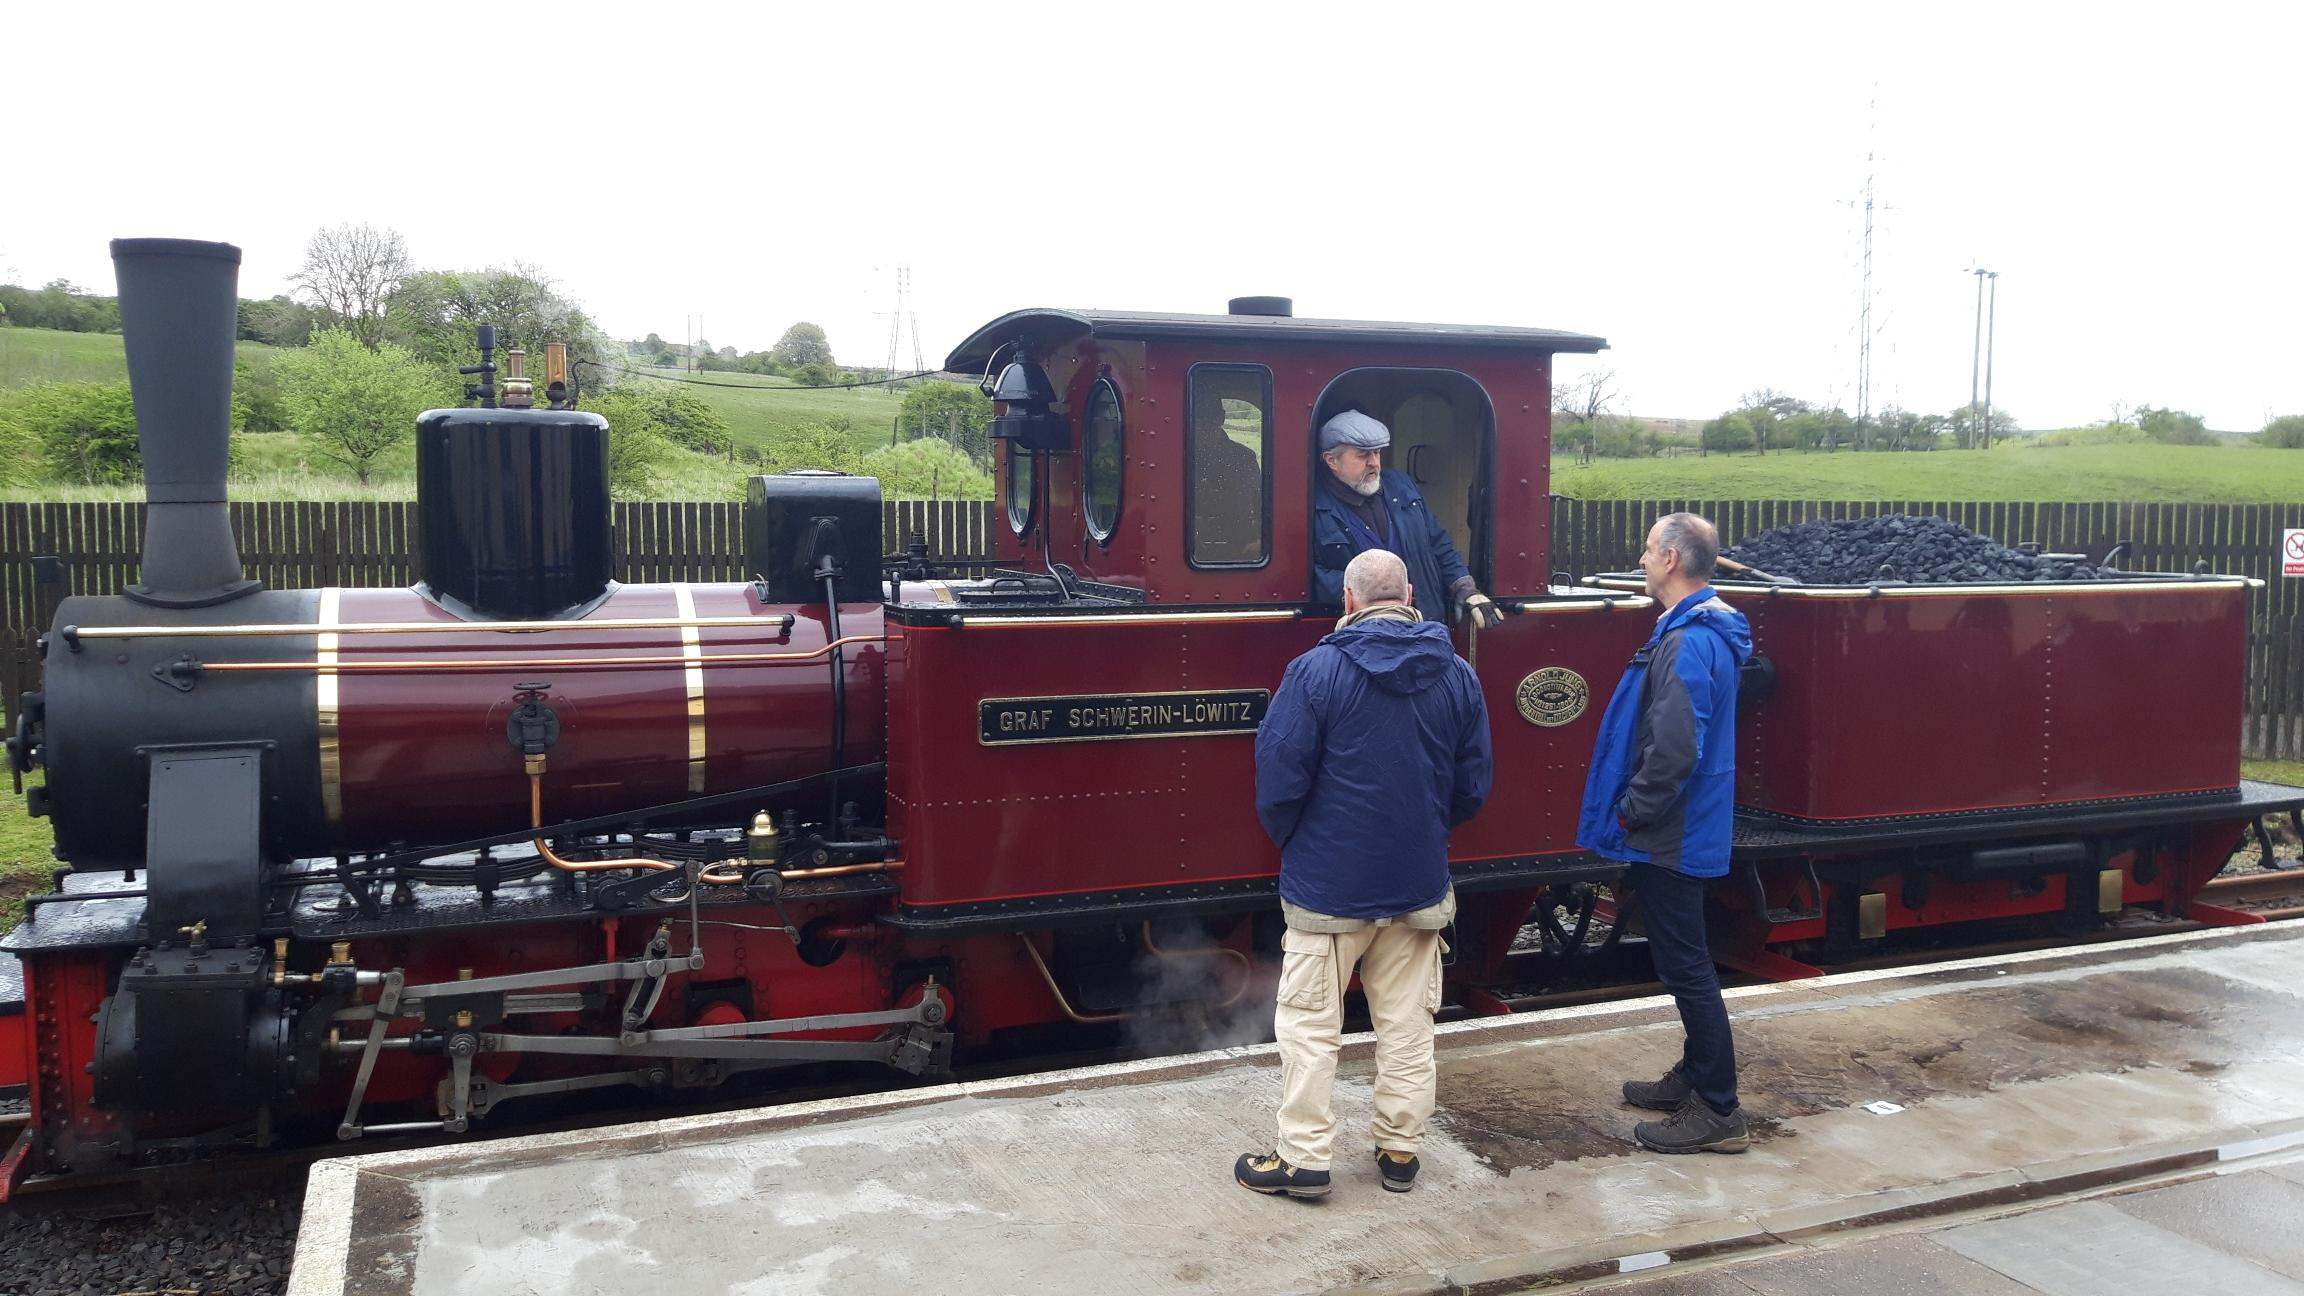 Brecon day trip May 2019